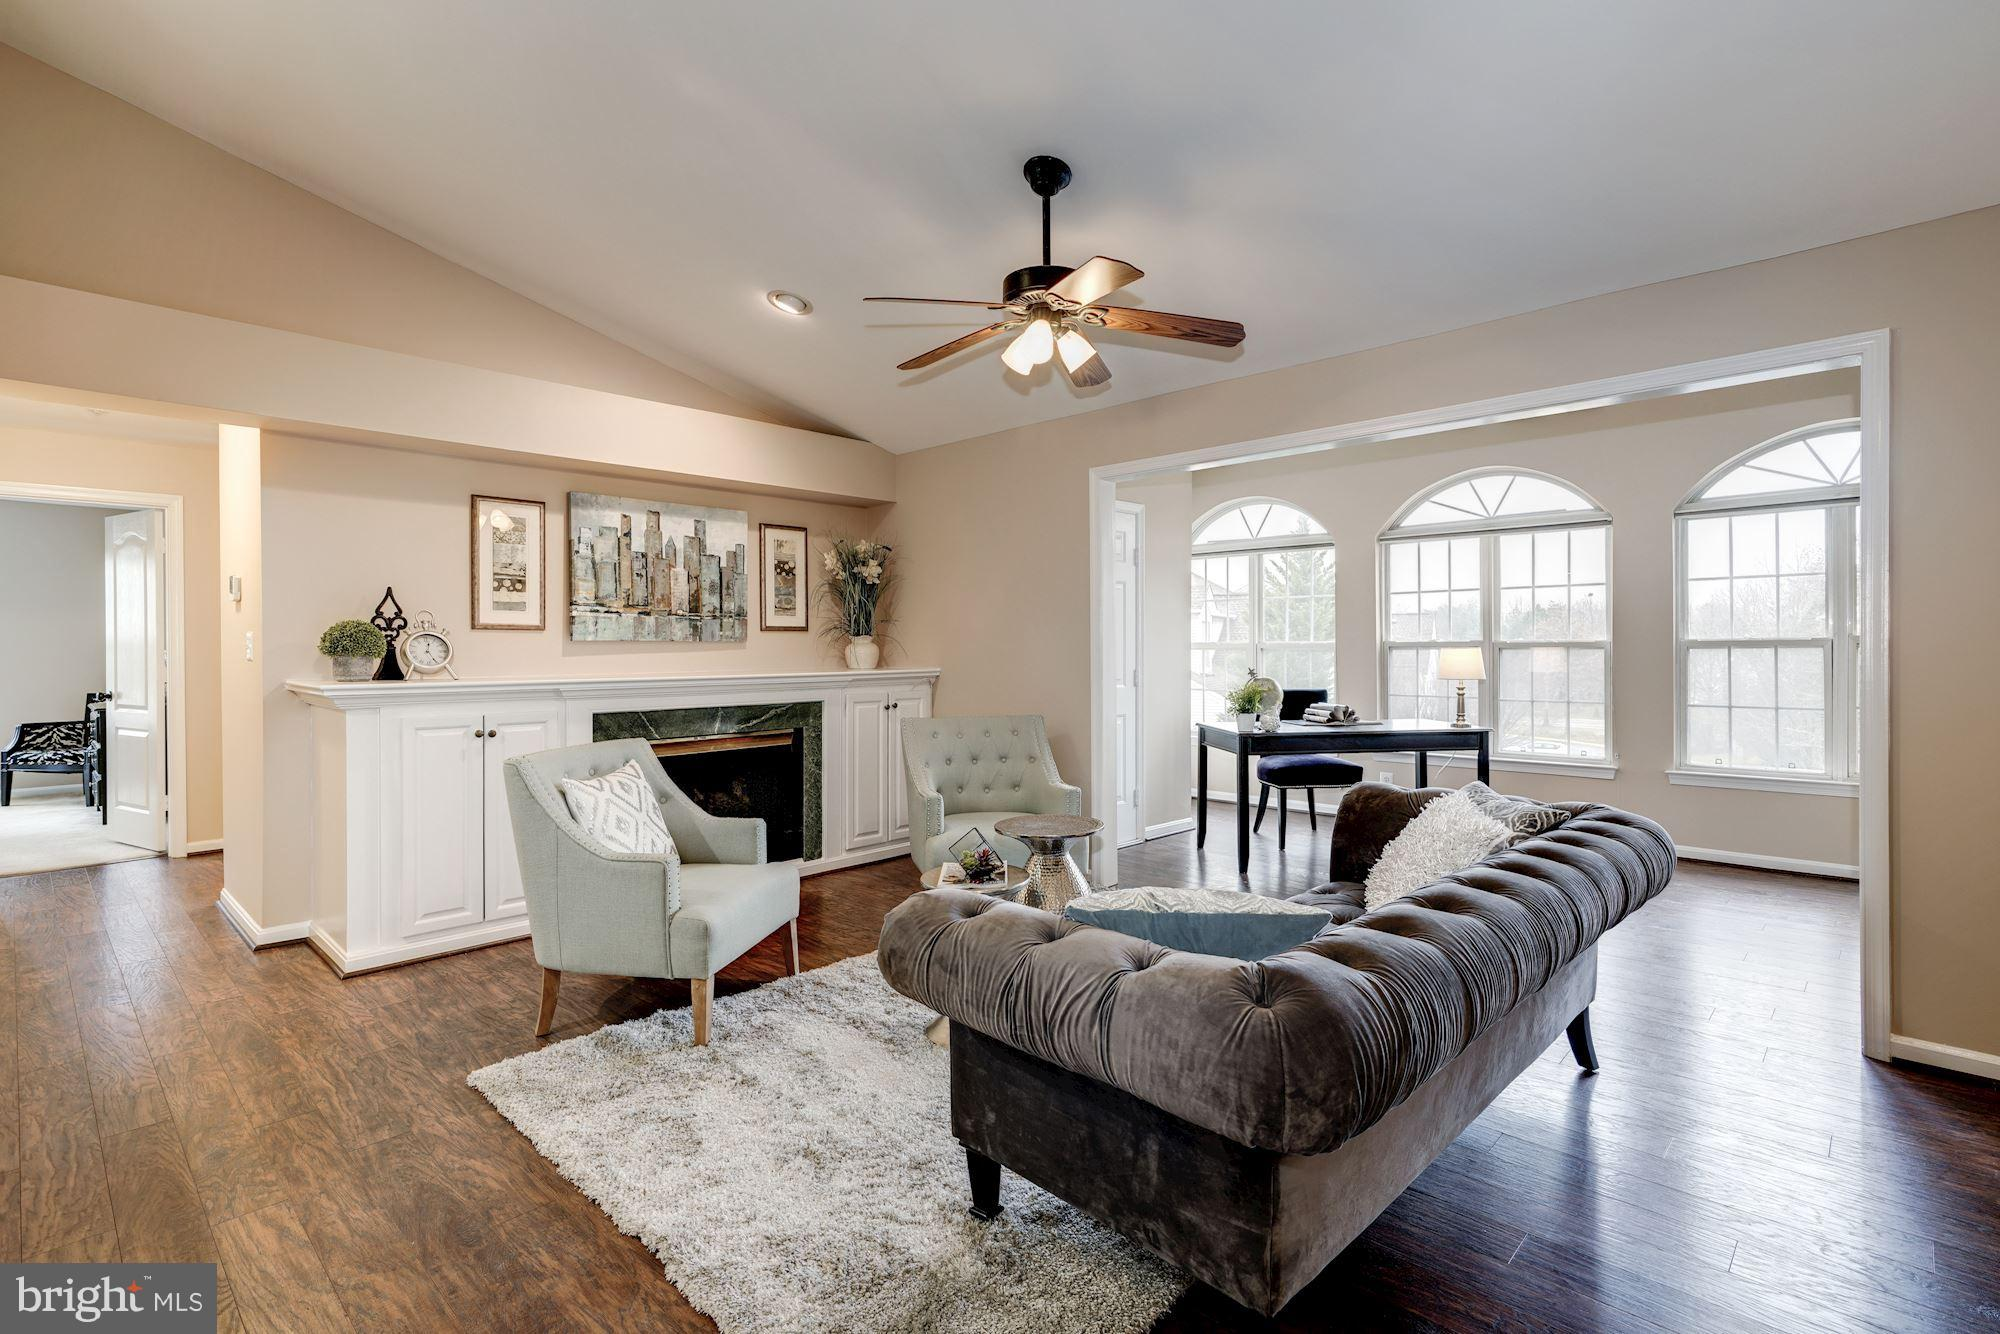 Gorgeous top-floor condo updated! Vaulted ceilings, 2018 water heater, 2016 HVAC, 2014 wood floors, gas stove and fireplace, two walk-in closets, storage unit, parking and much more. Near Kingstowne, Franconia Metro, VRE, 495 & 395, Wegmans. The community has two pools, jogging trails, tennis, volleyball, tot lots, club house, basketball courts all with a low $290/mo and $78/qtr condo fees. Nearby lake & cherry blossoms right outside your window!